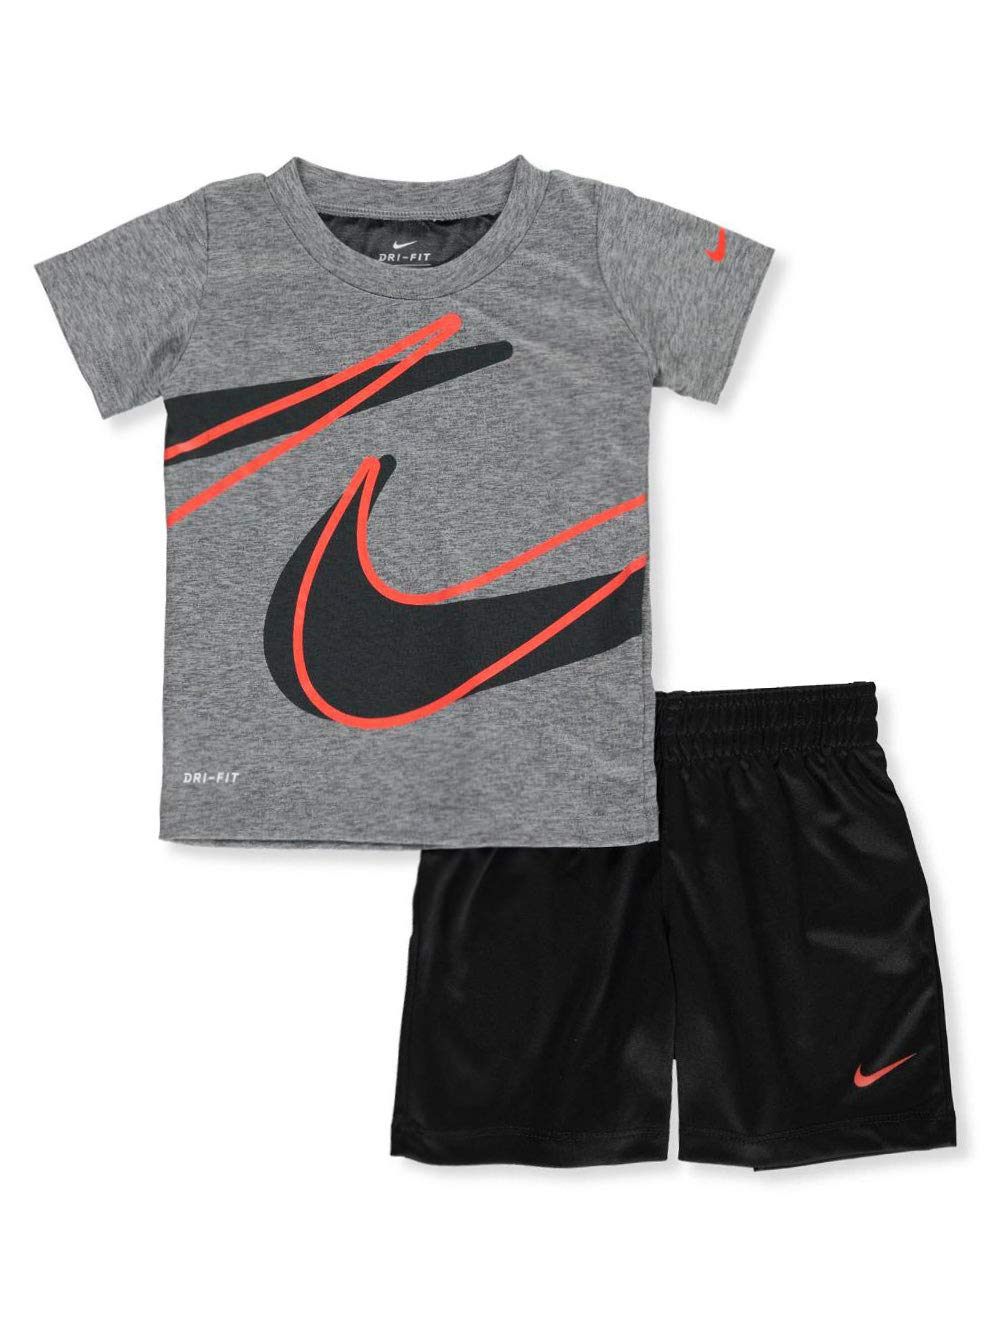 Nike Baby Boys' Dri-Fit 2-Piece Shorts Set Outfit - Black(76E526-023)/Red, 18 Months